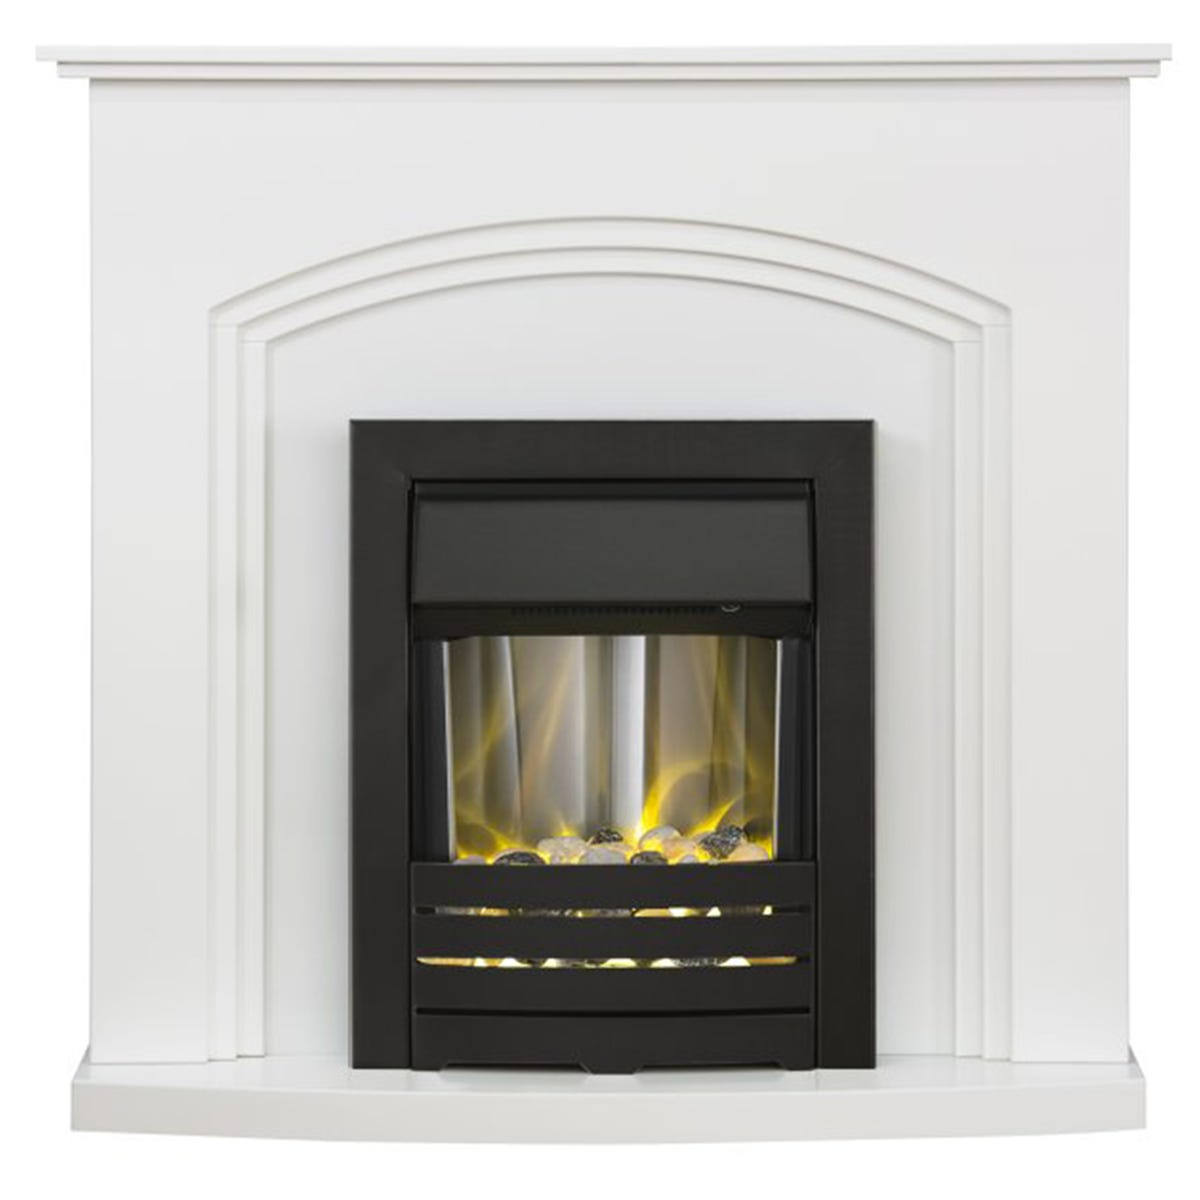 Adam Truro Fireplace in Pure White with Helios Electric Fire in Black 41 Inch